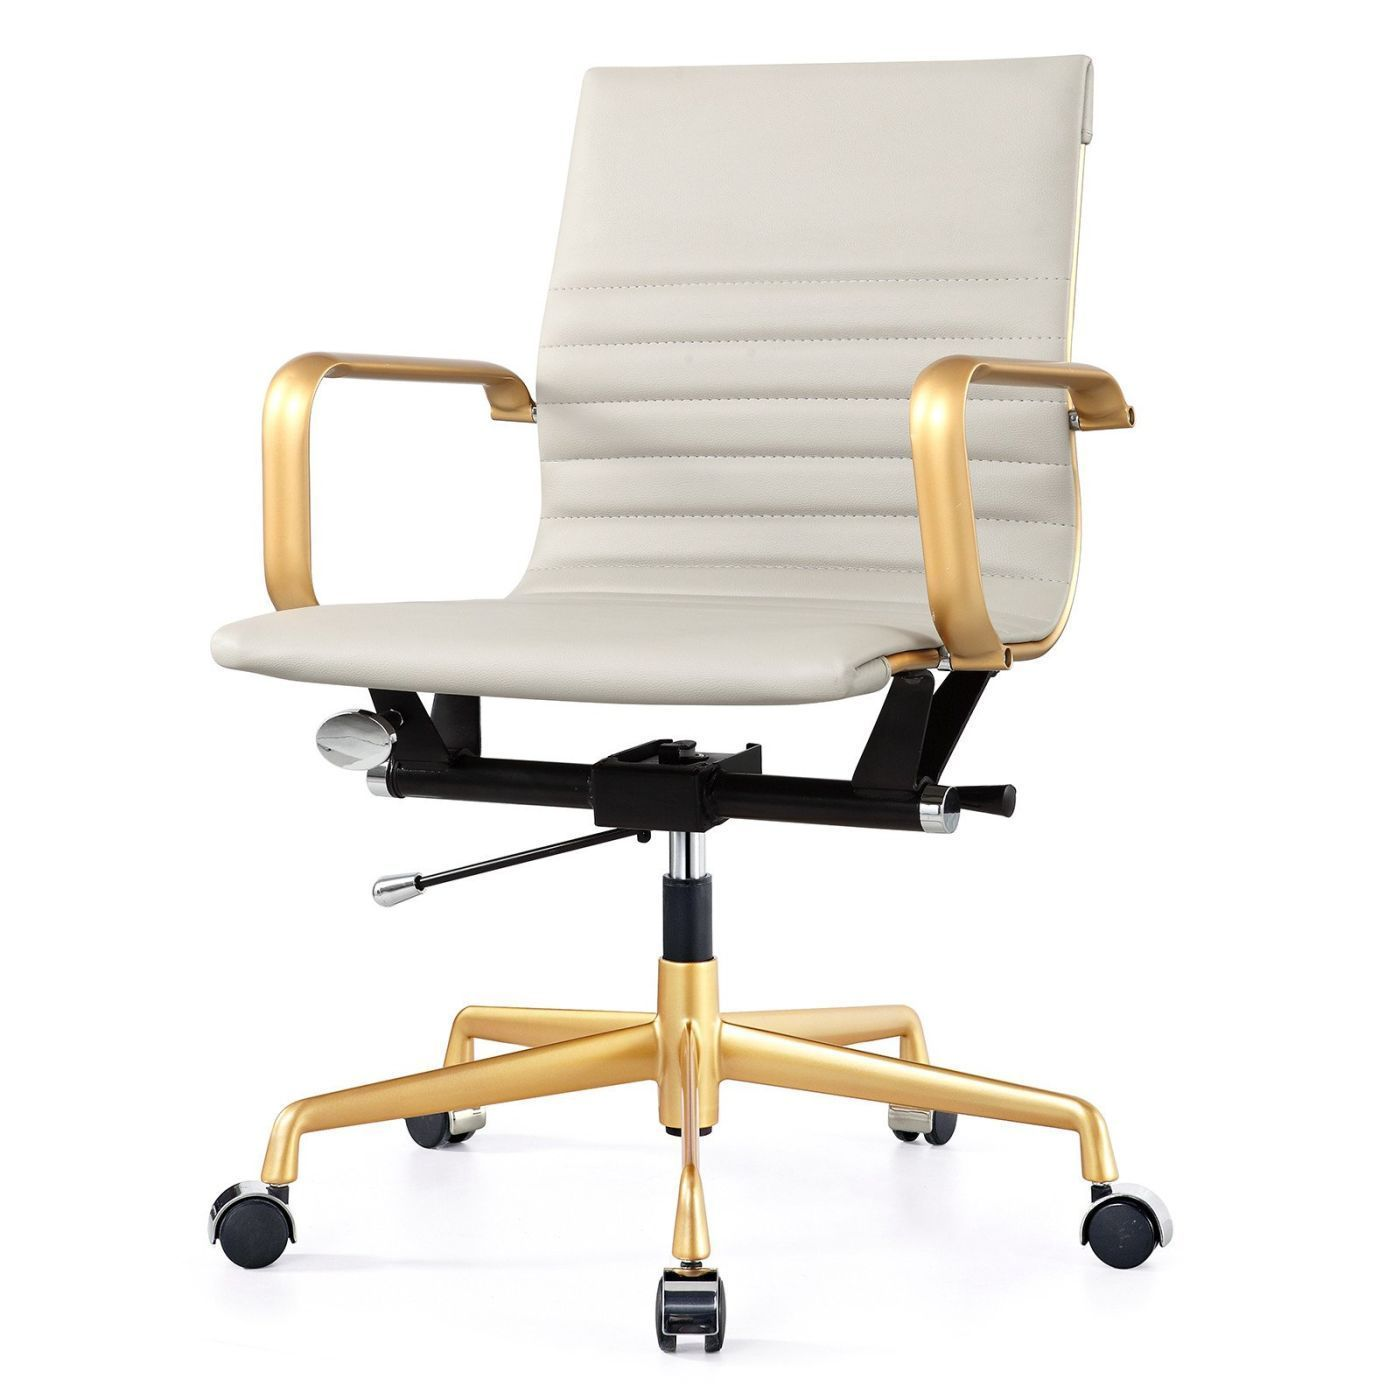 Office Chair In Grey Vegan Leather And Gold Ikeachair Best Office Chair Home Office Chairs Comfortable Office Chair